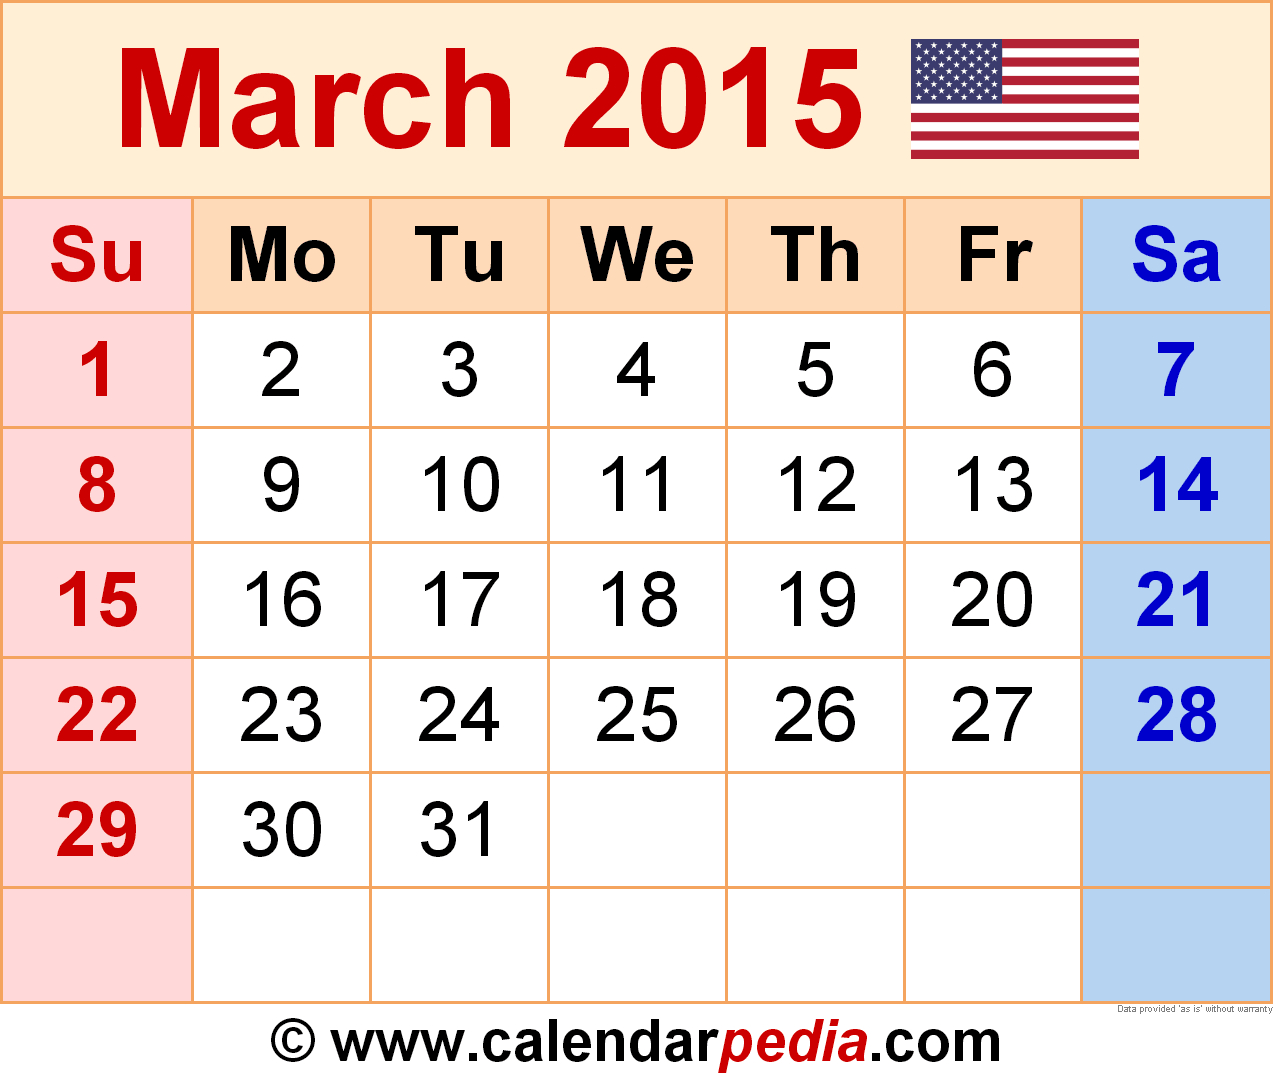 March 2015 - Calendar Templates For Word, Excel And Pdf